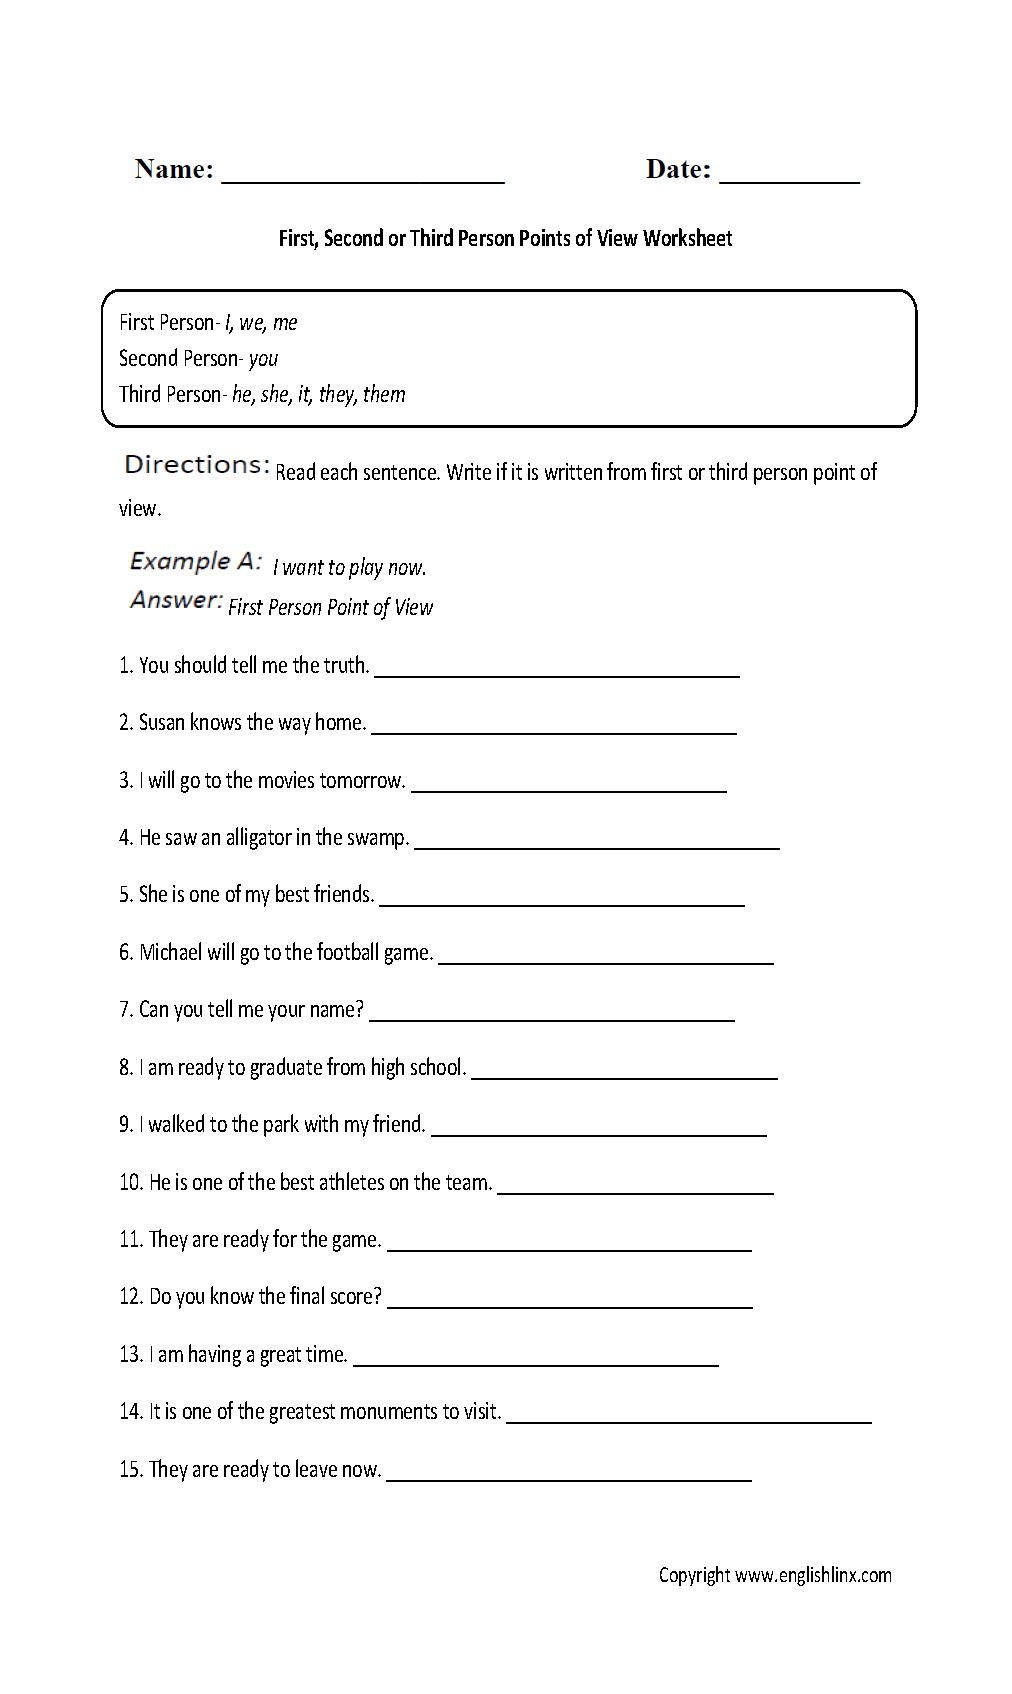 Weirdmailus  Personable Englishlinxcom  Point Of View Worksheets With Likable Point Of View Worksheet With Agreeable Scale Ruler Worksheet Also Facial Expressions Worksheets In Addition Greater Than And Less Than Worksheets For Grade  And Linear Sequences Worksheet As Well As Free Printable Grade  Math Worksheets Additionally Segmenting And Blending Worksheets From Englishlinxcom With Weirdmailus  Likable Englishlinxcom  Point Of View Worksheets With Agreeable Point Of View Worksheet And Personable Scale Ruler Worksheet Also Facial Expressions Worksheets In Addition Greater Than And Less Than Worksheets For Grade  From Englishlinxcom